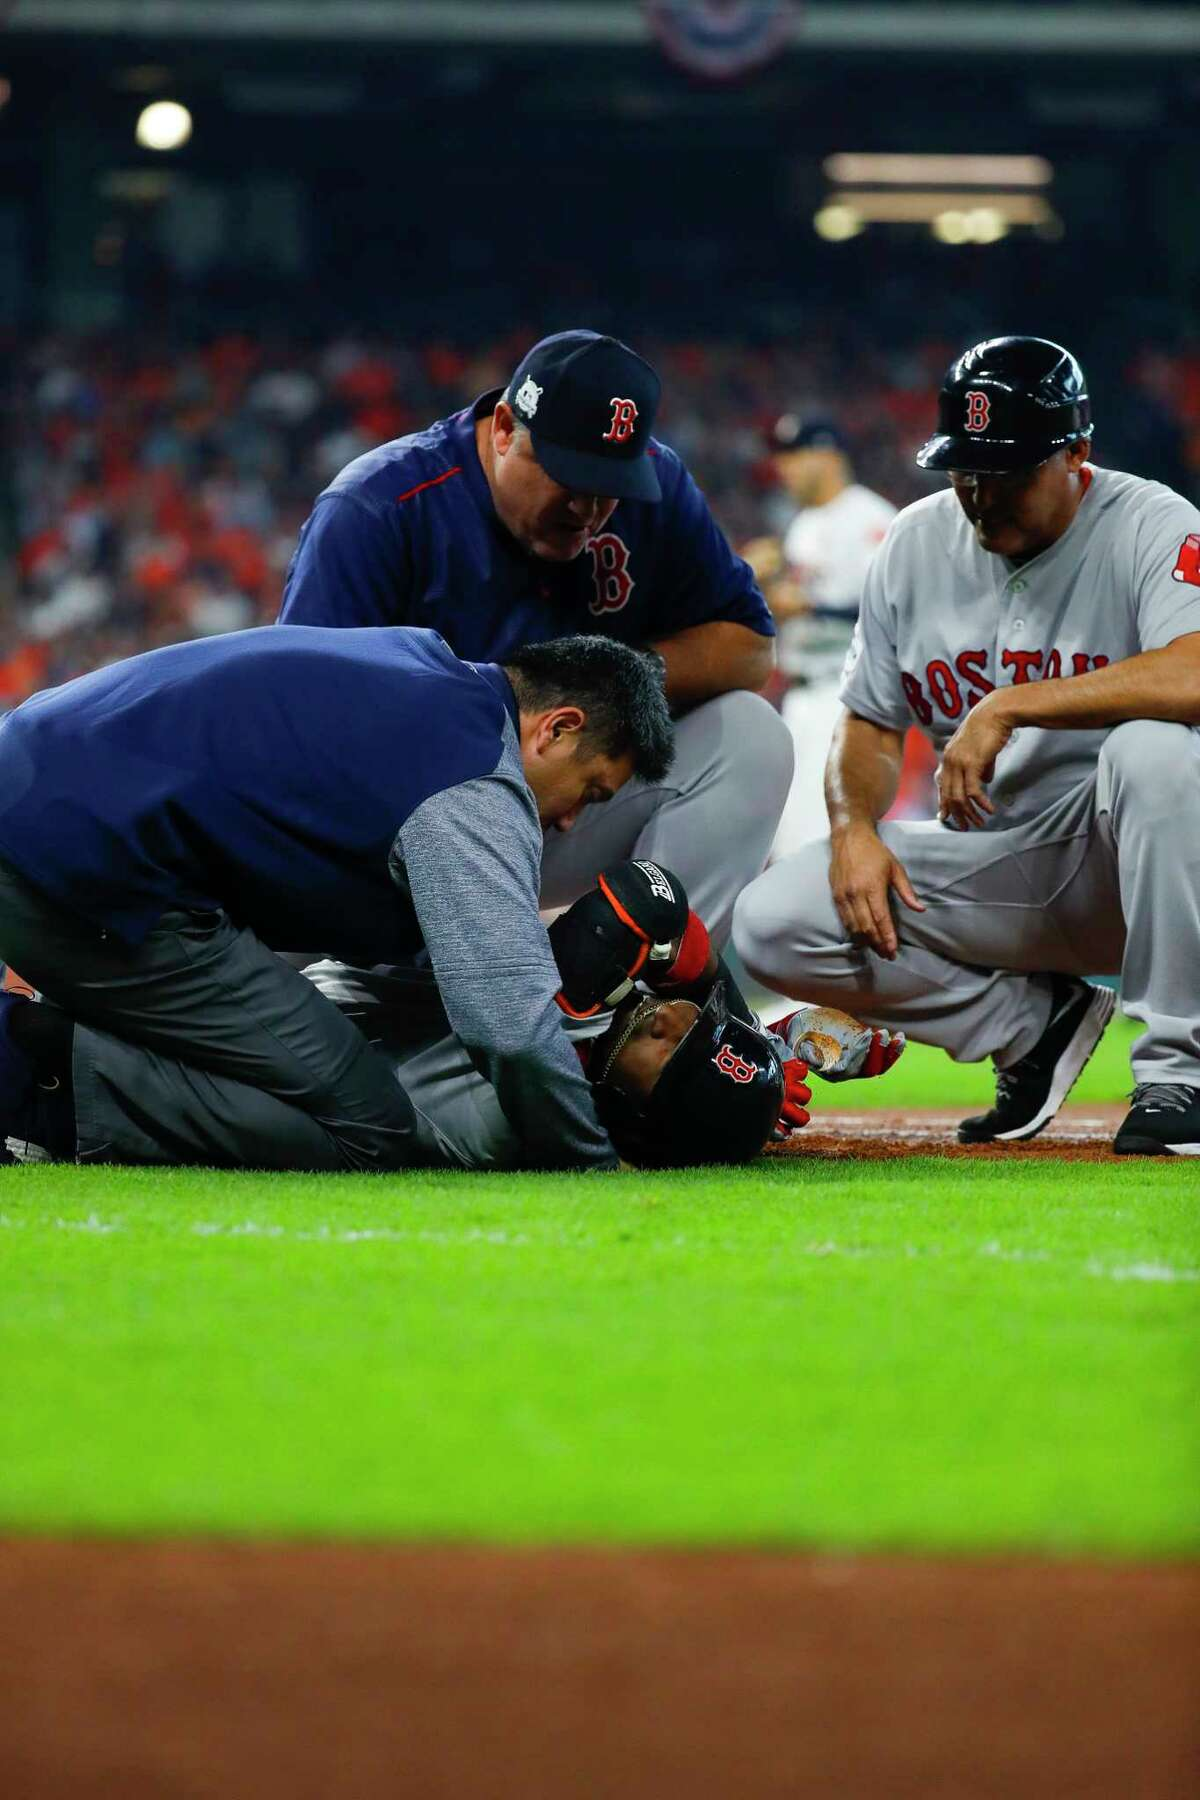 Boston Red Sox second baseman Eduardo Nunez is hurt during the first inning of Game 1 of the ALDS at Minute Maid Park on Tuesday, Oct. 3, 2017, in Houston.